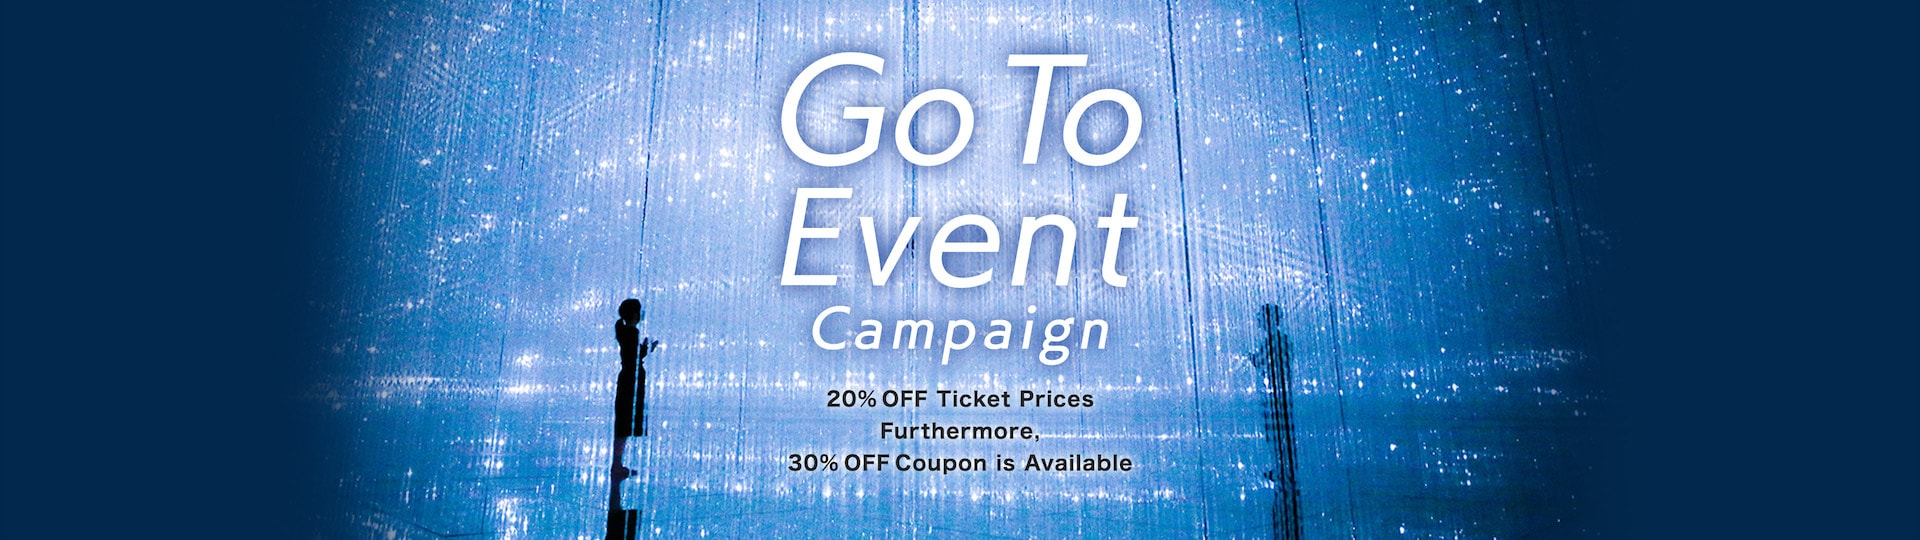 Go To Event Campaign | 20% OFF Ticket Prices Furthermore, 30% OFF Coupon is Available.